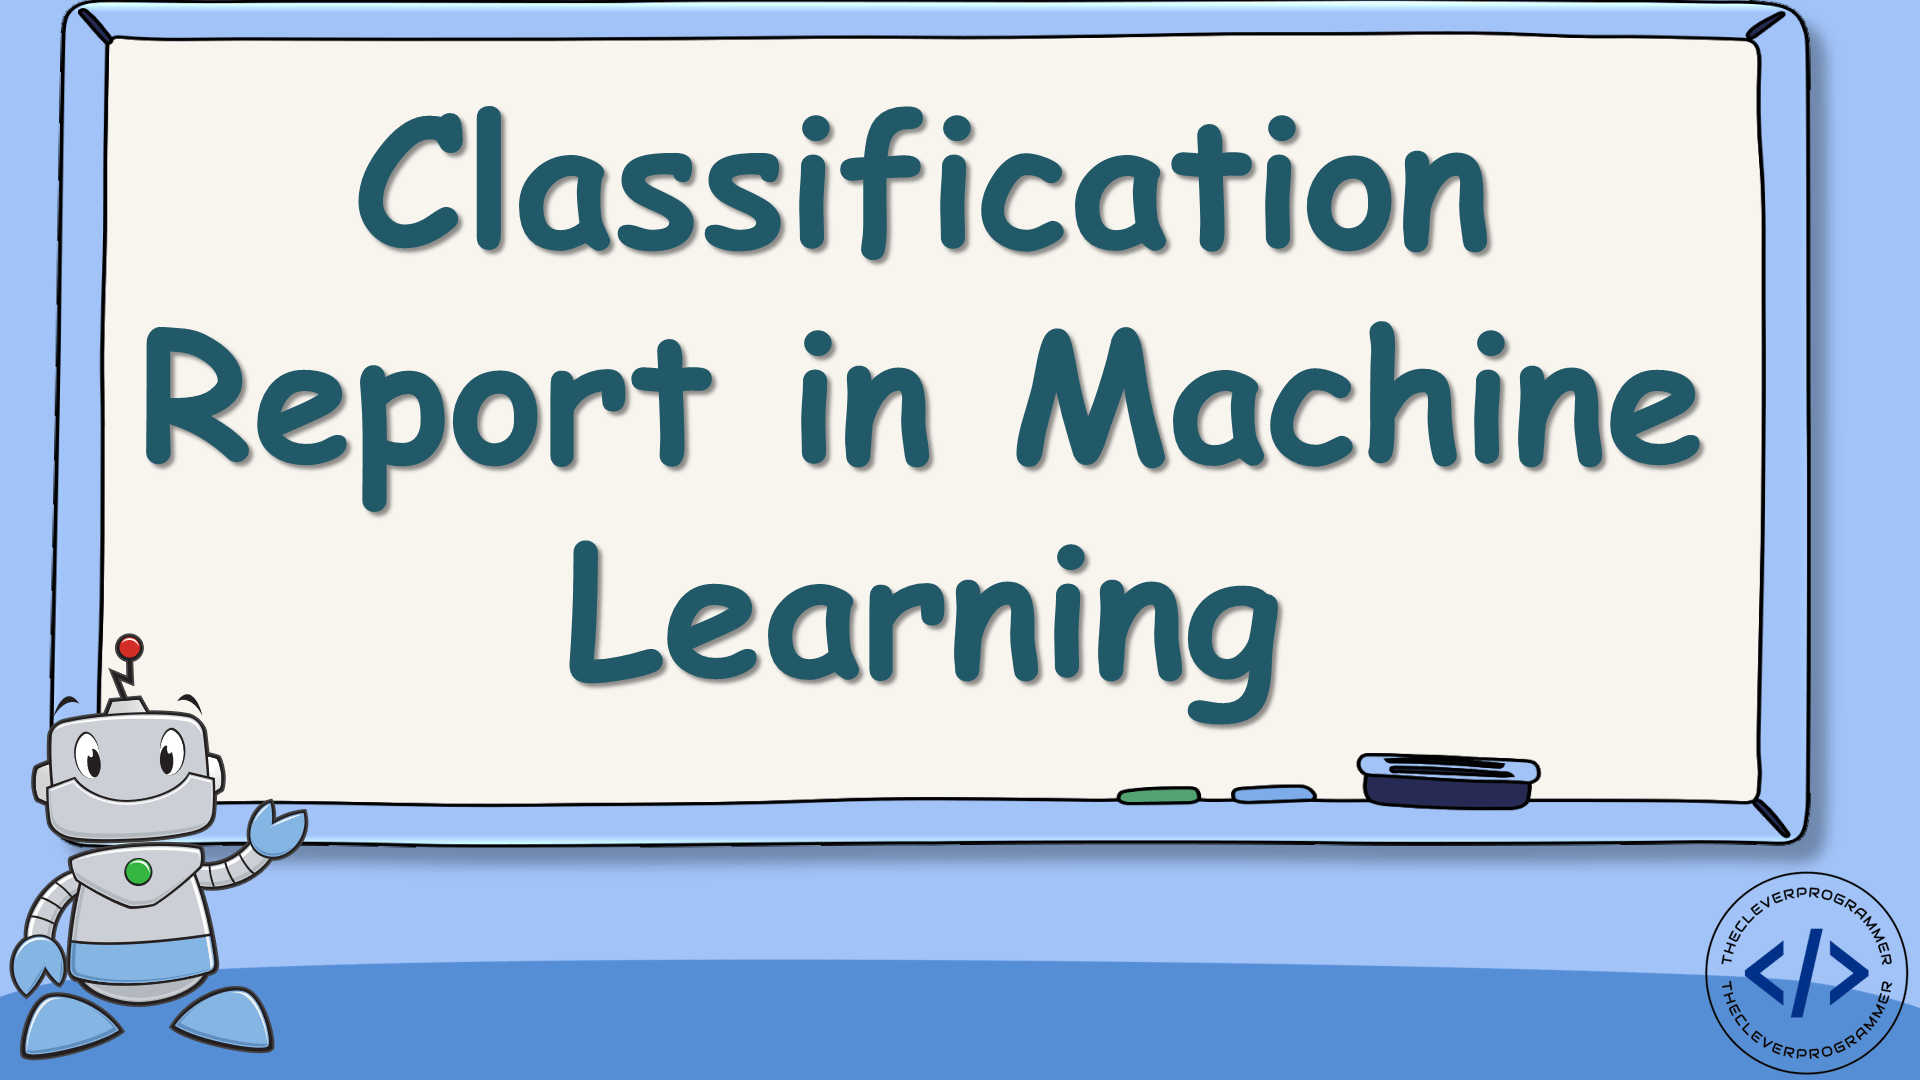 Classification Report in Machine Learning